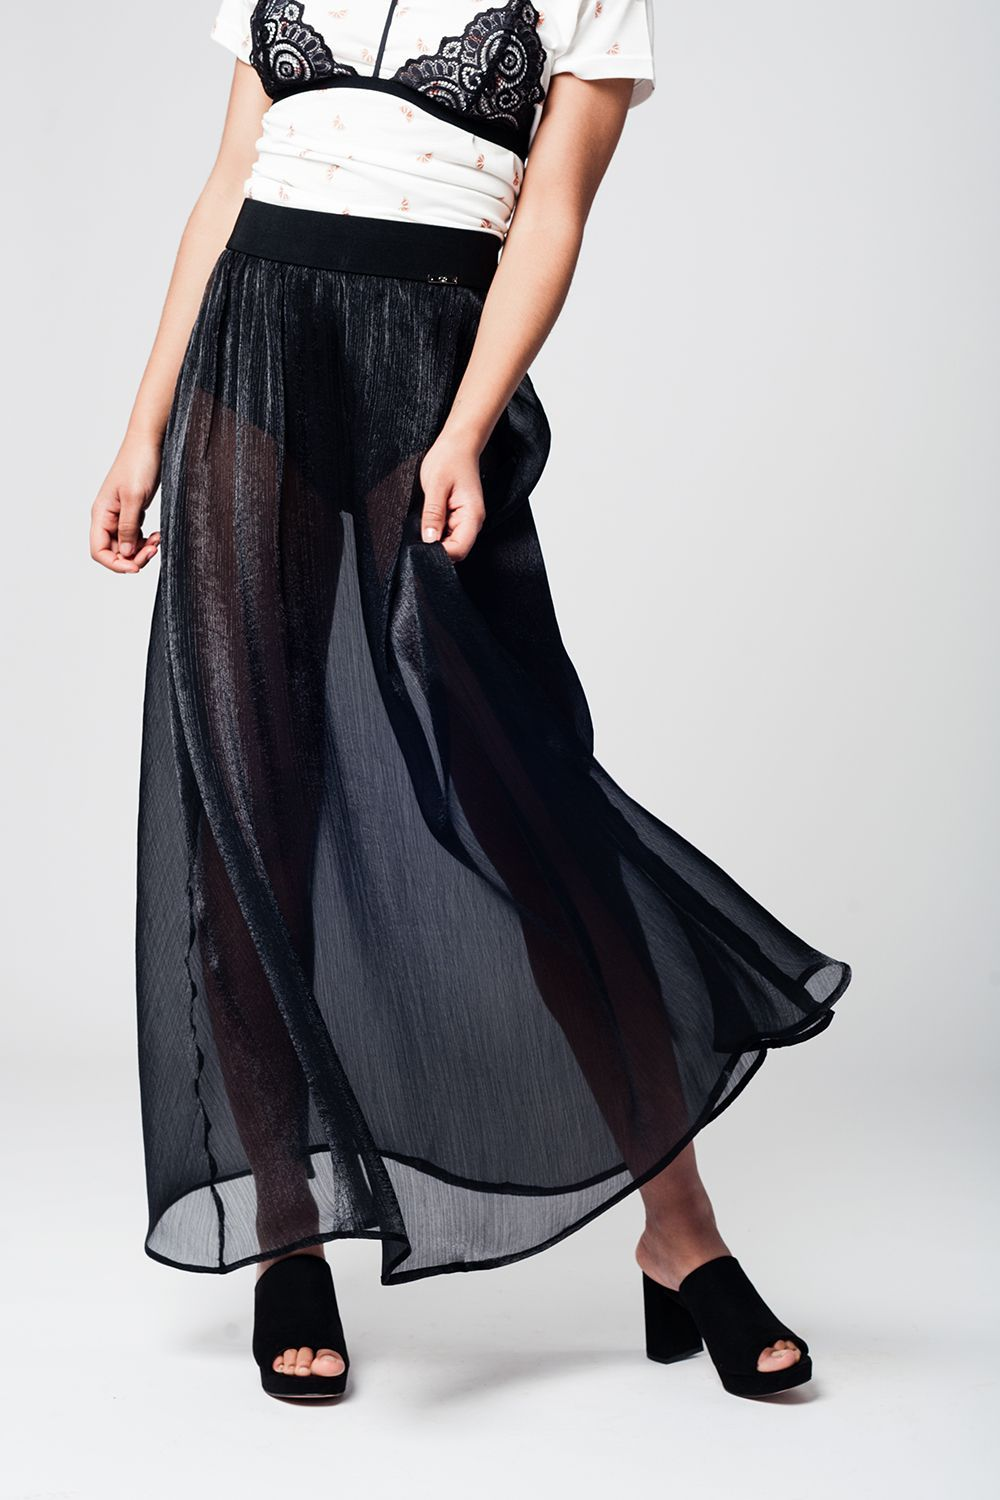 Black Maxi Skirt in Chiffon Fabric - KATANA FASHION BOUTIQUE